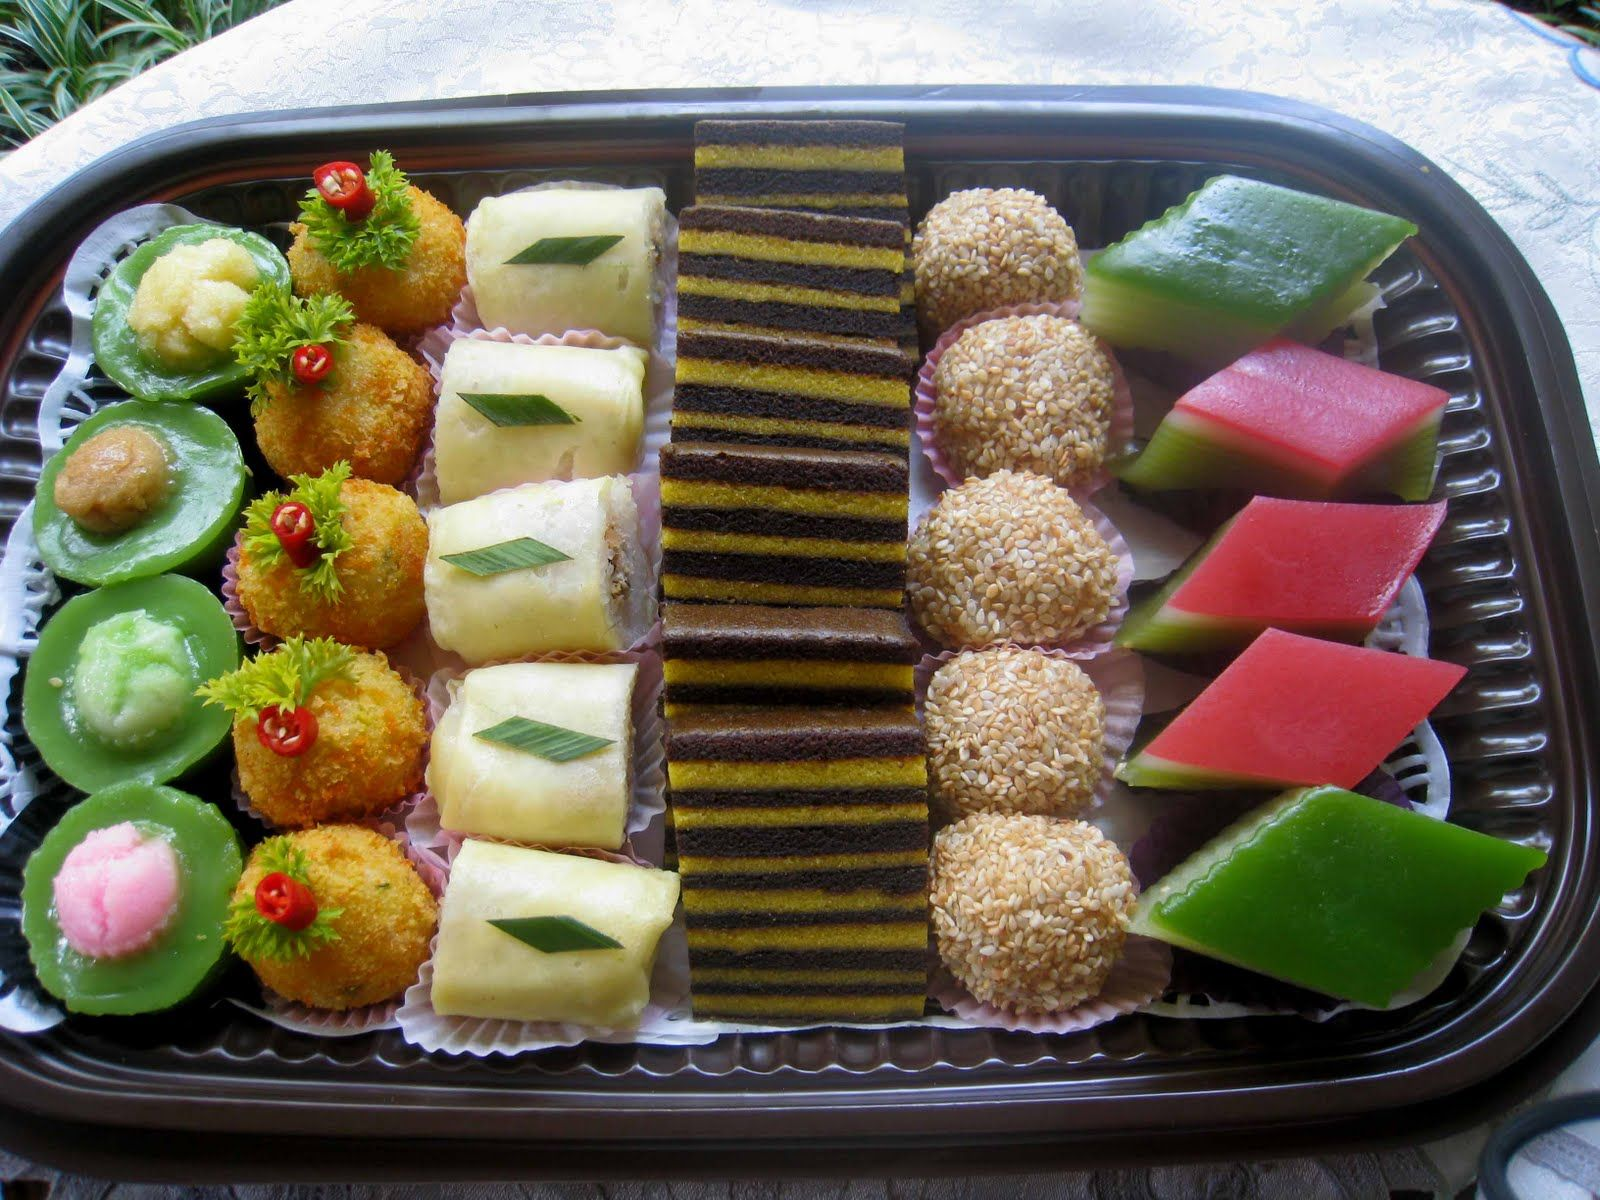 Indonesian Traditional Mini Cakes Called Jajan Pasar You Know You Can Make These With Felt And They Re So Easy To Make I Makanan Dan Minuman Makanan Cemilan